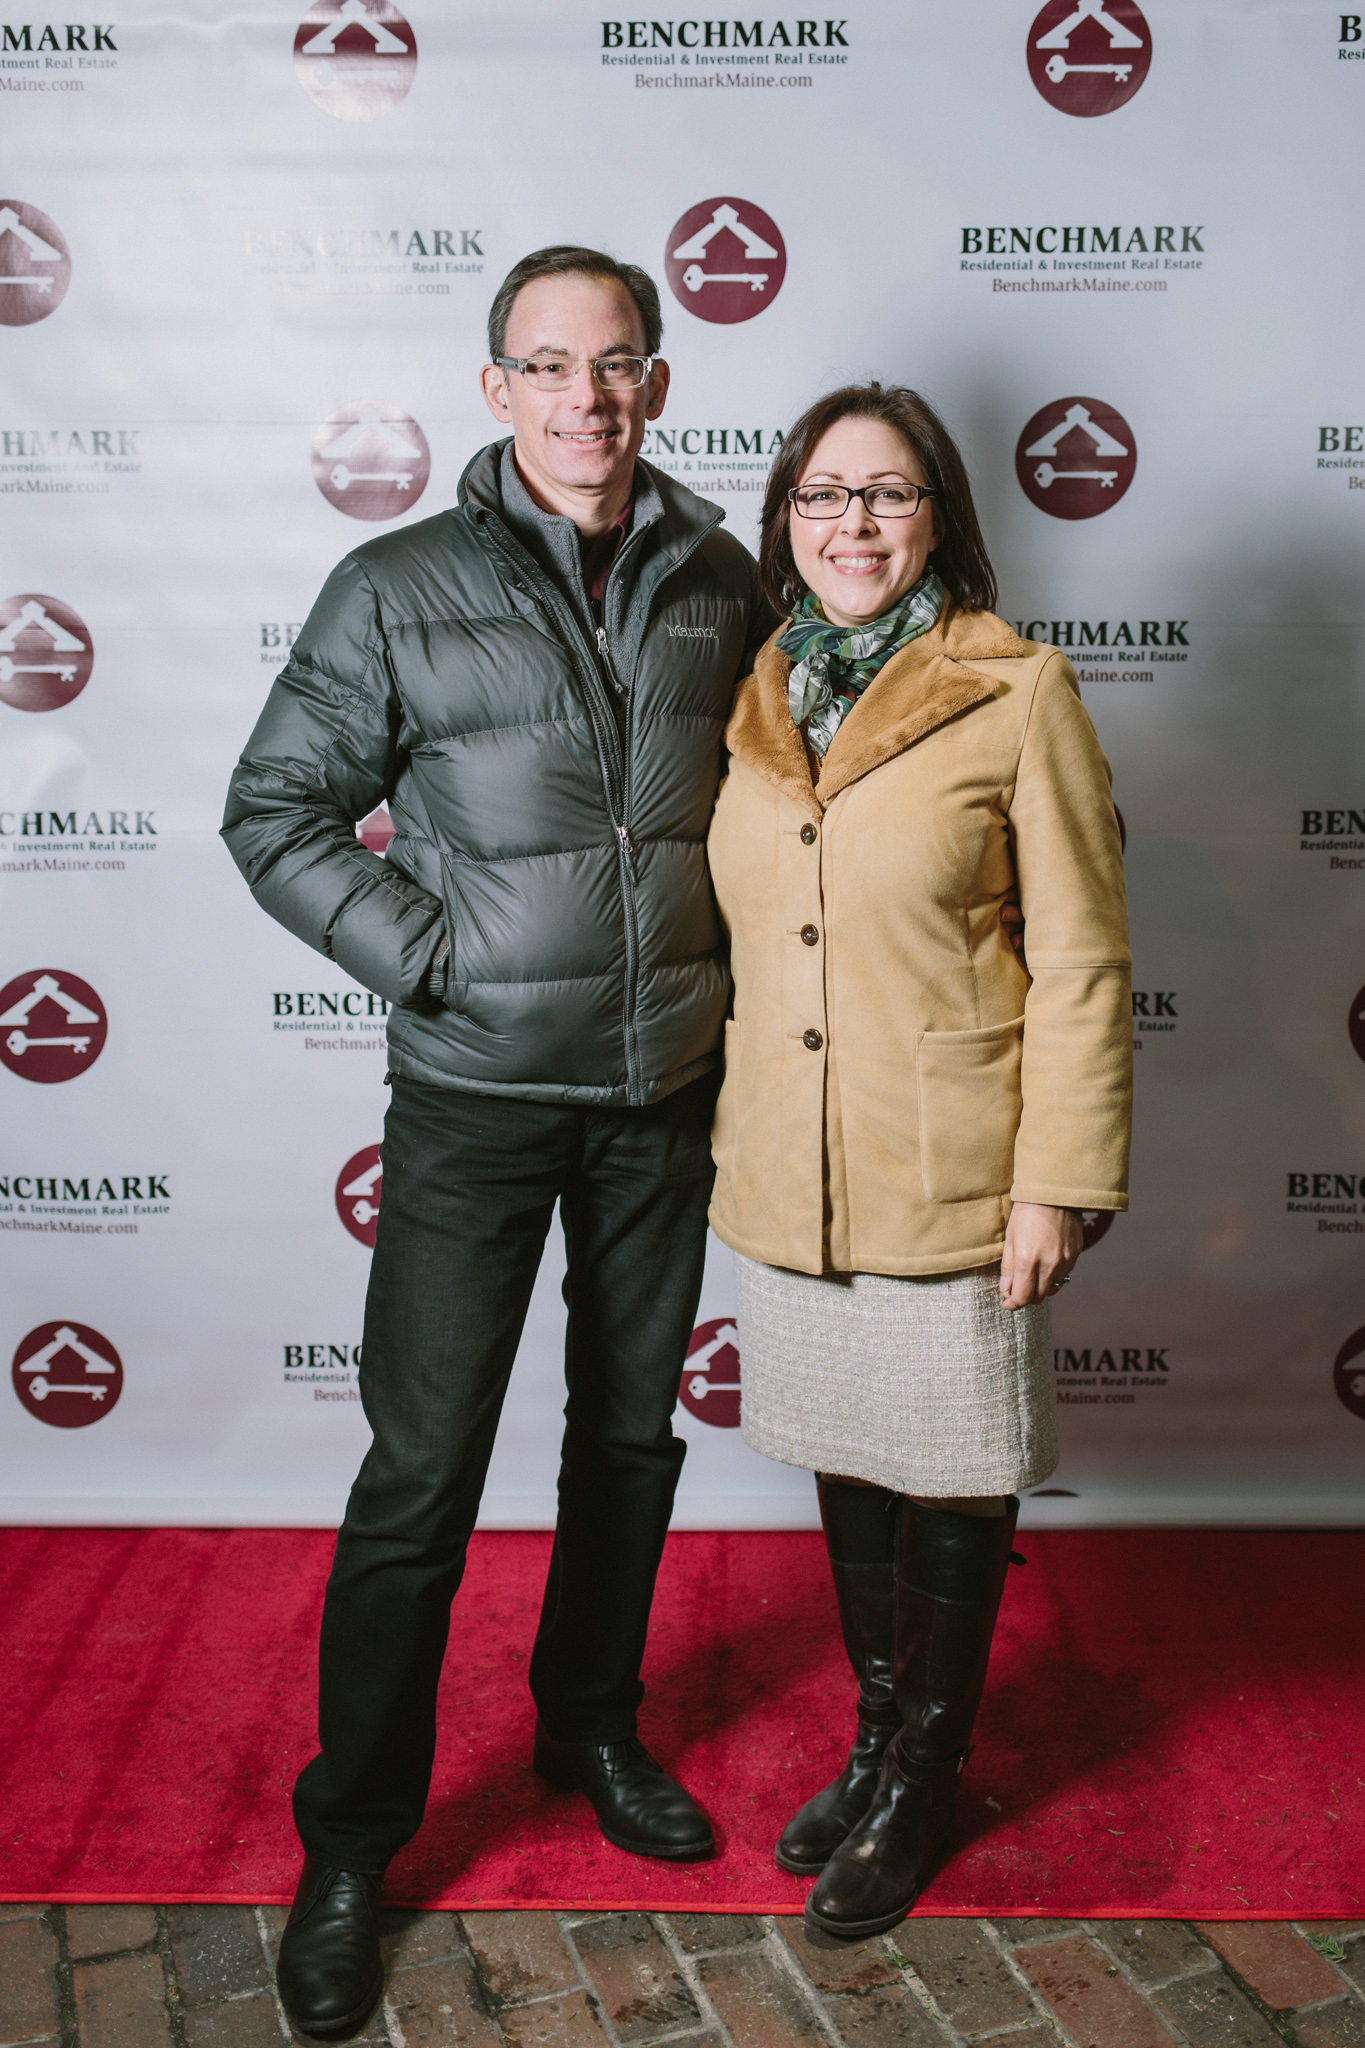 Benchmark_Holiday_Party_SR-027.jpg